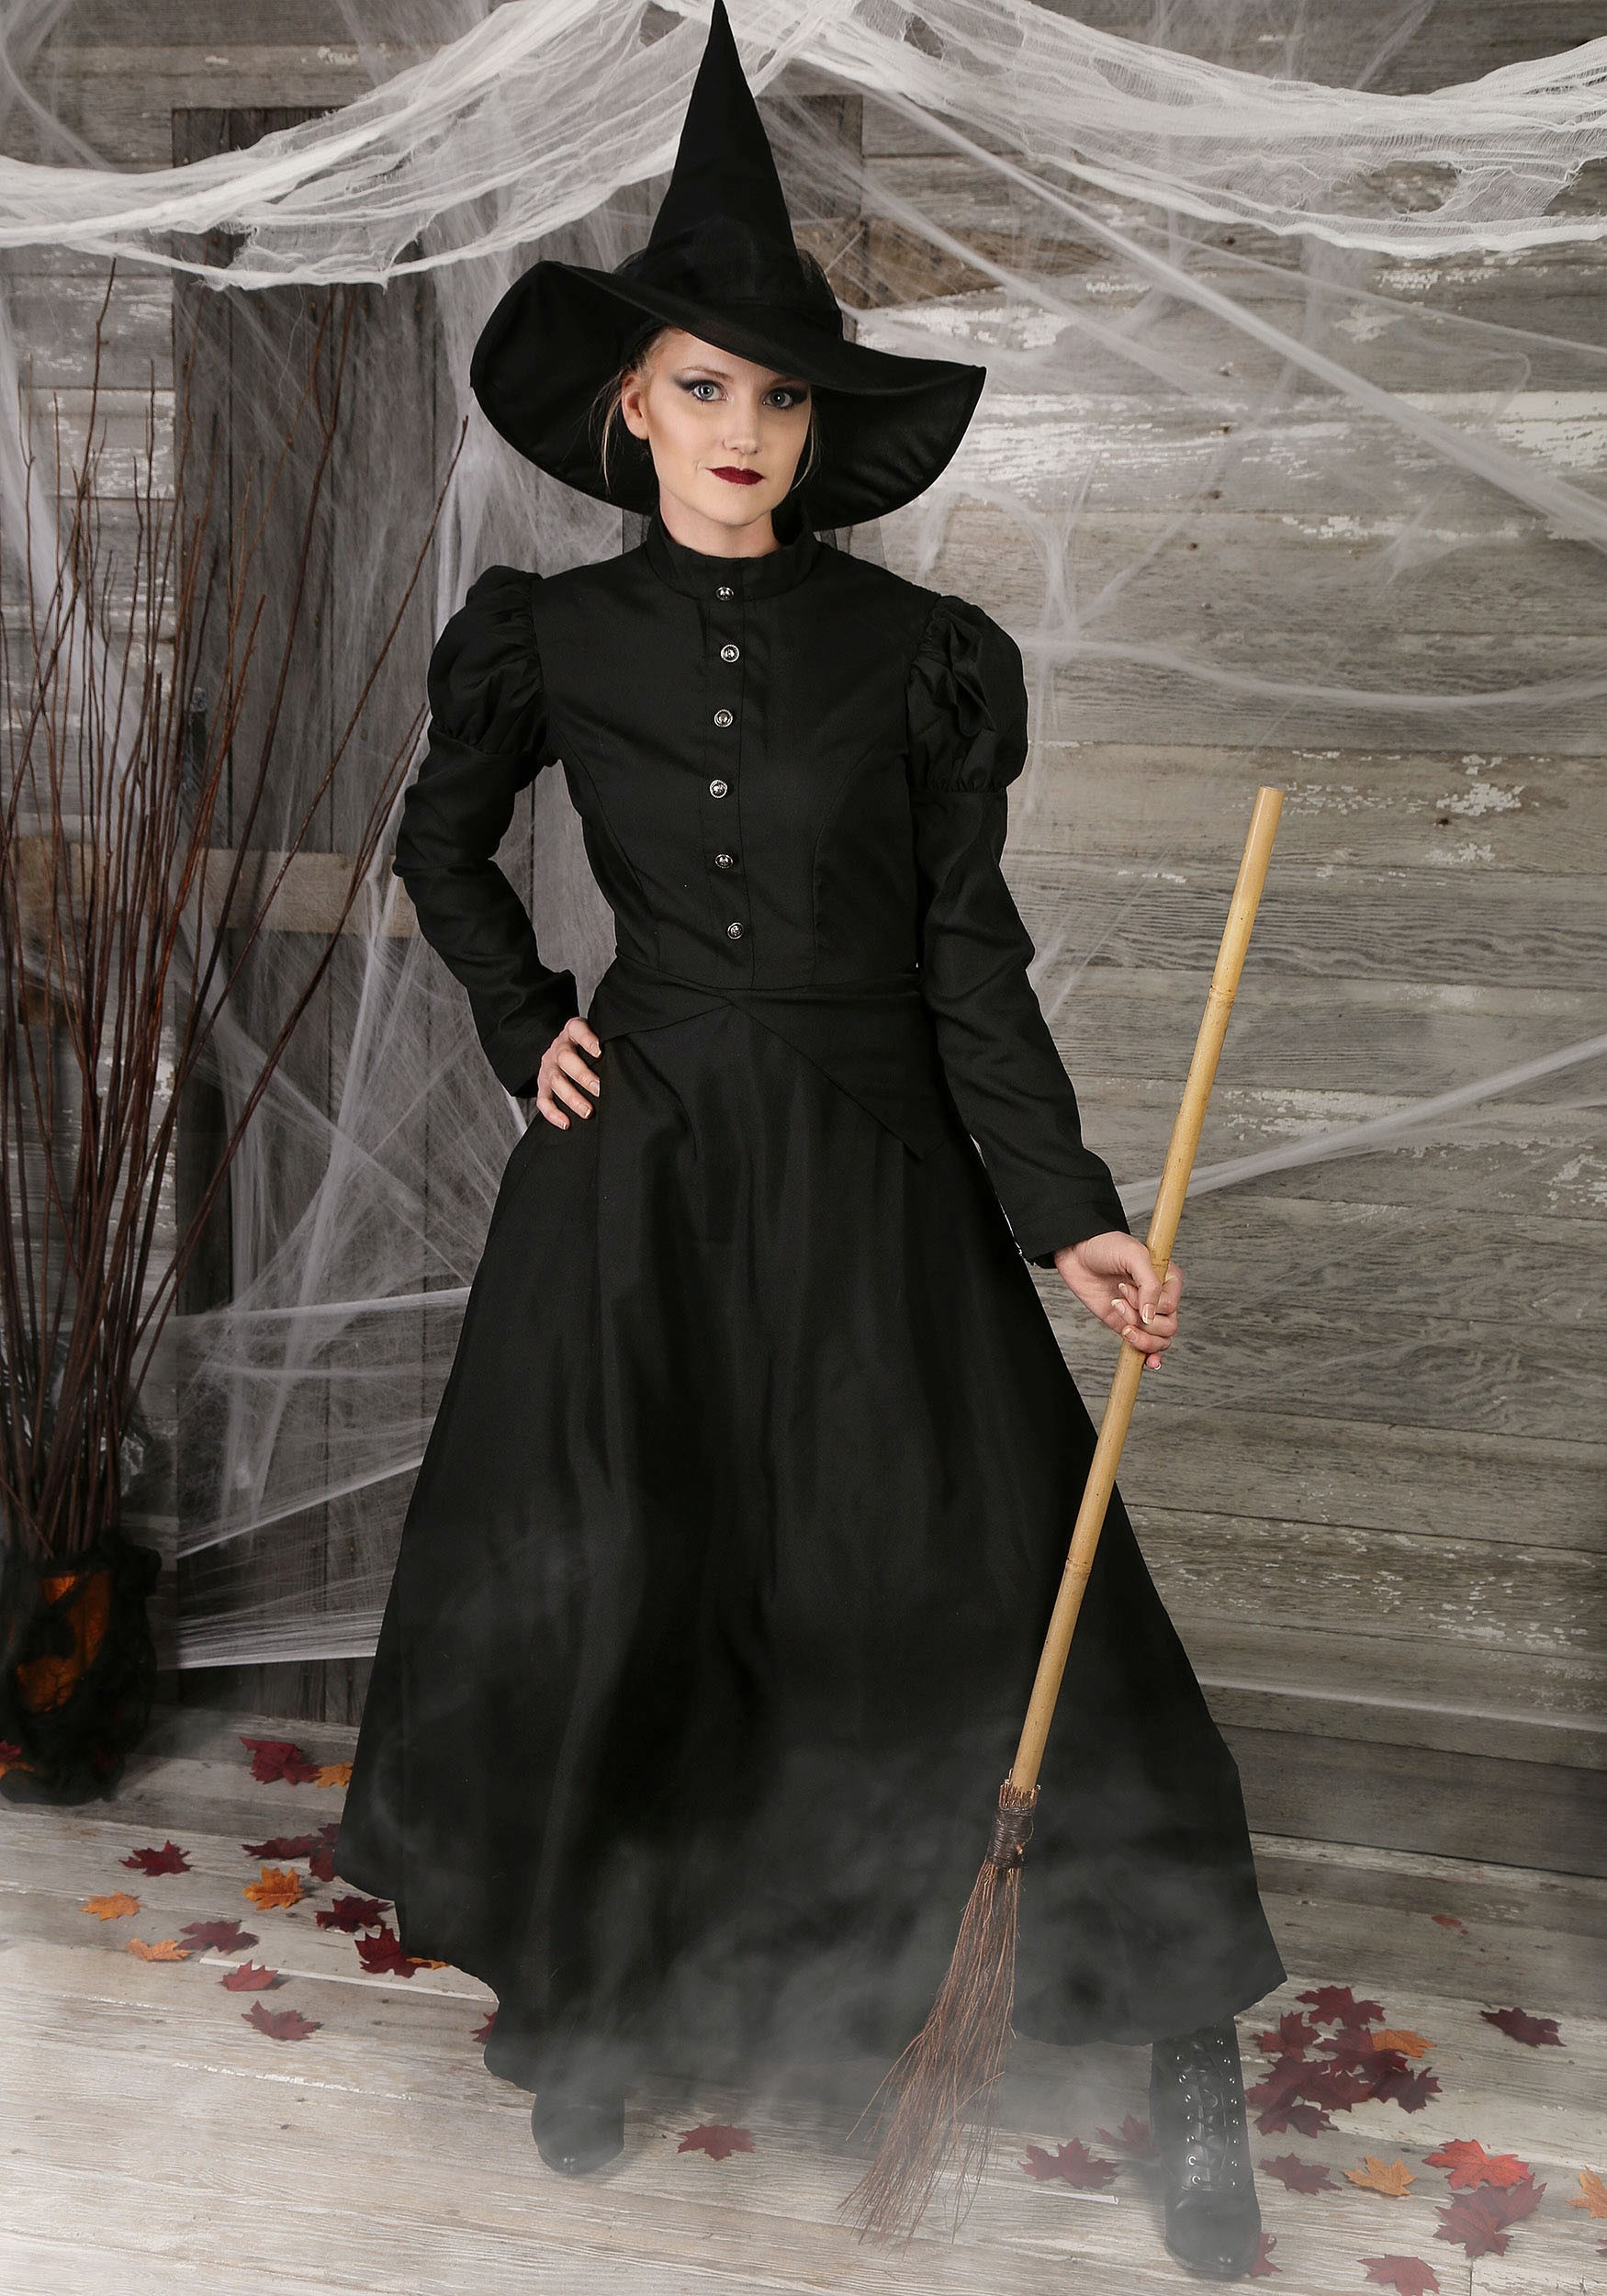 d0983746a71 Women's Plus Size Witch Costume